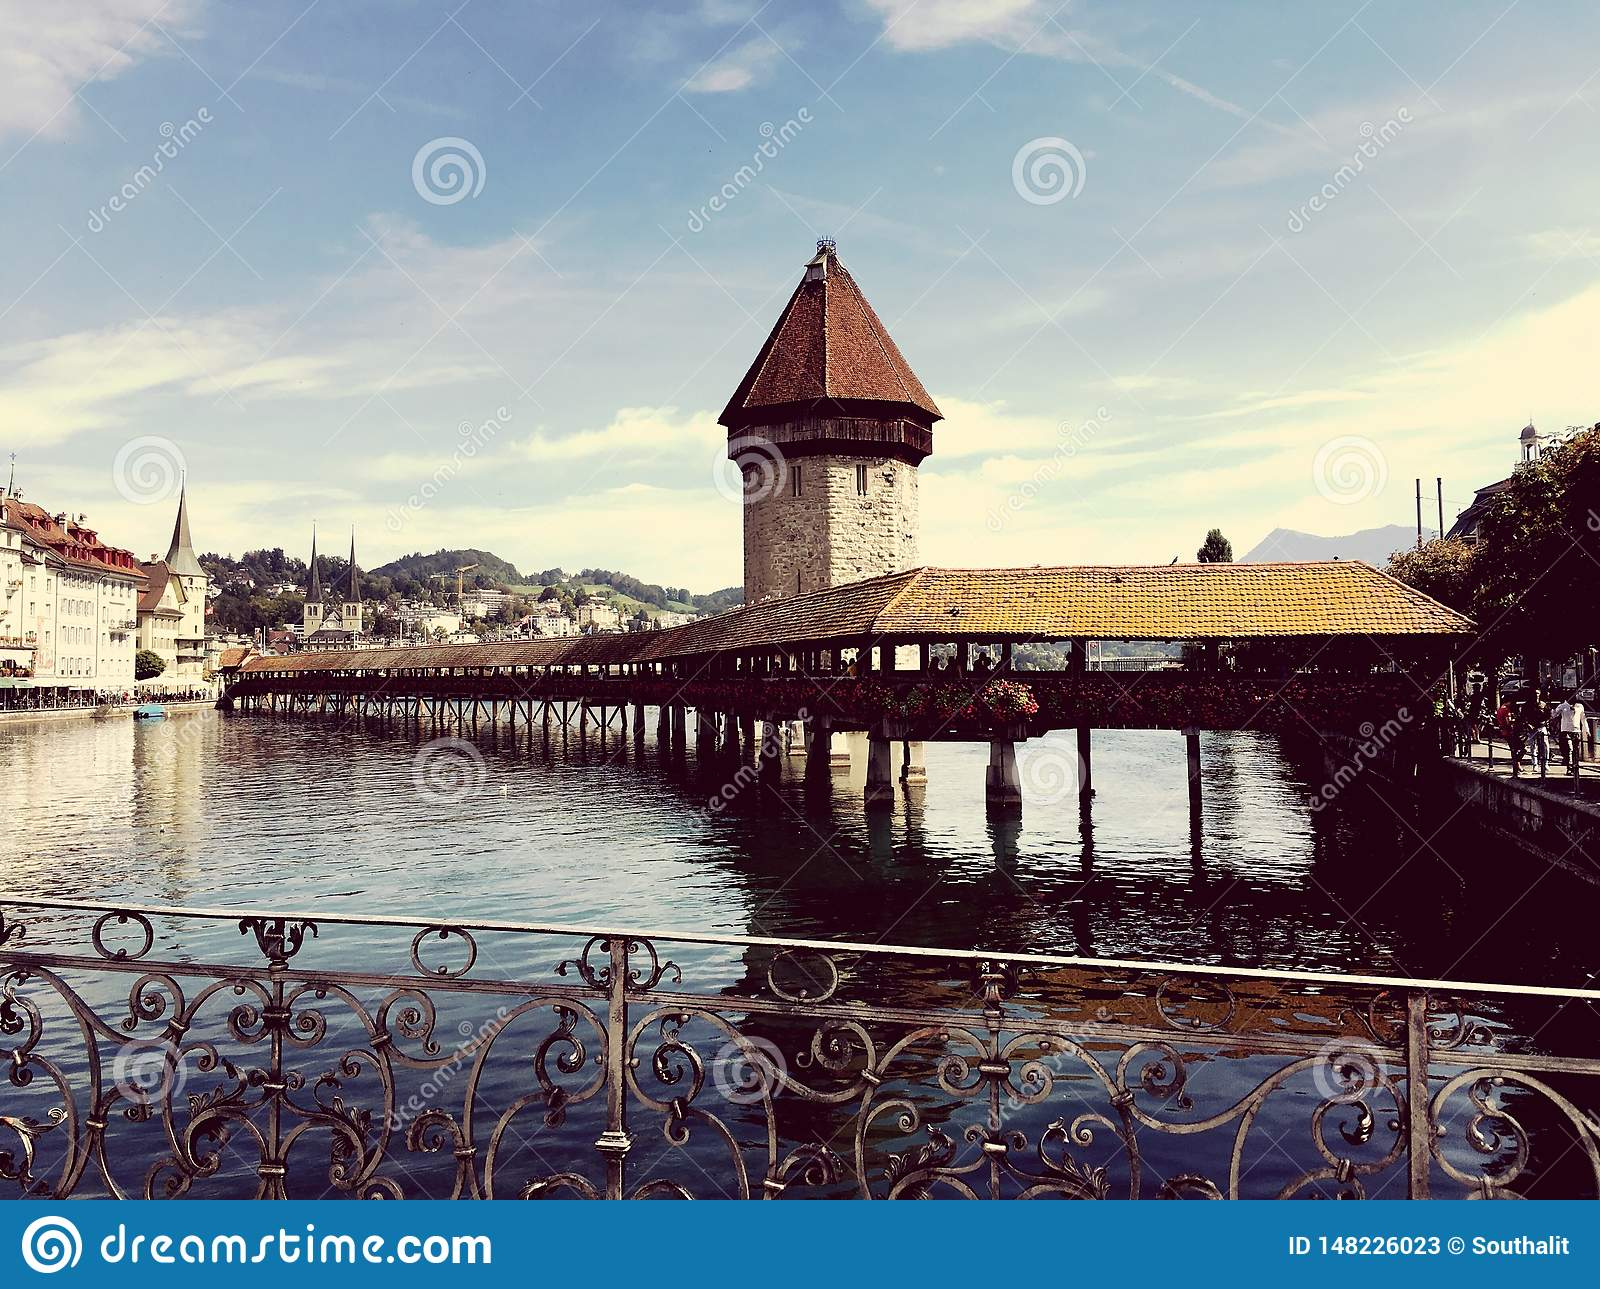 Lucerne famous Bridge and tower